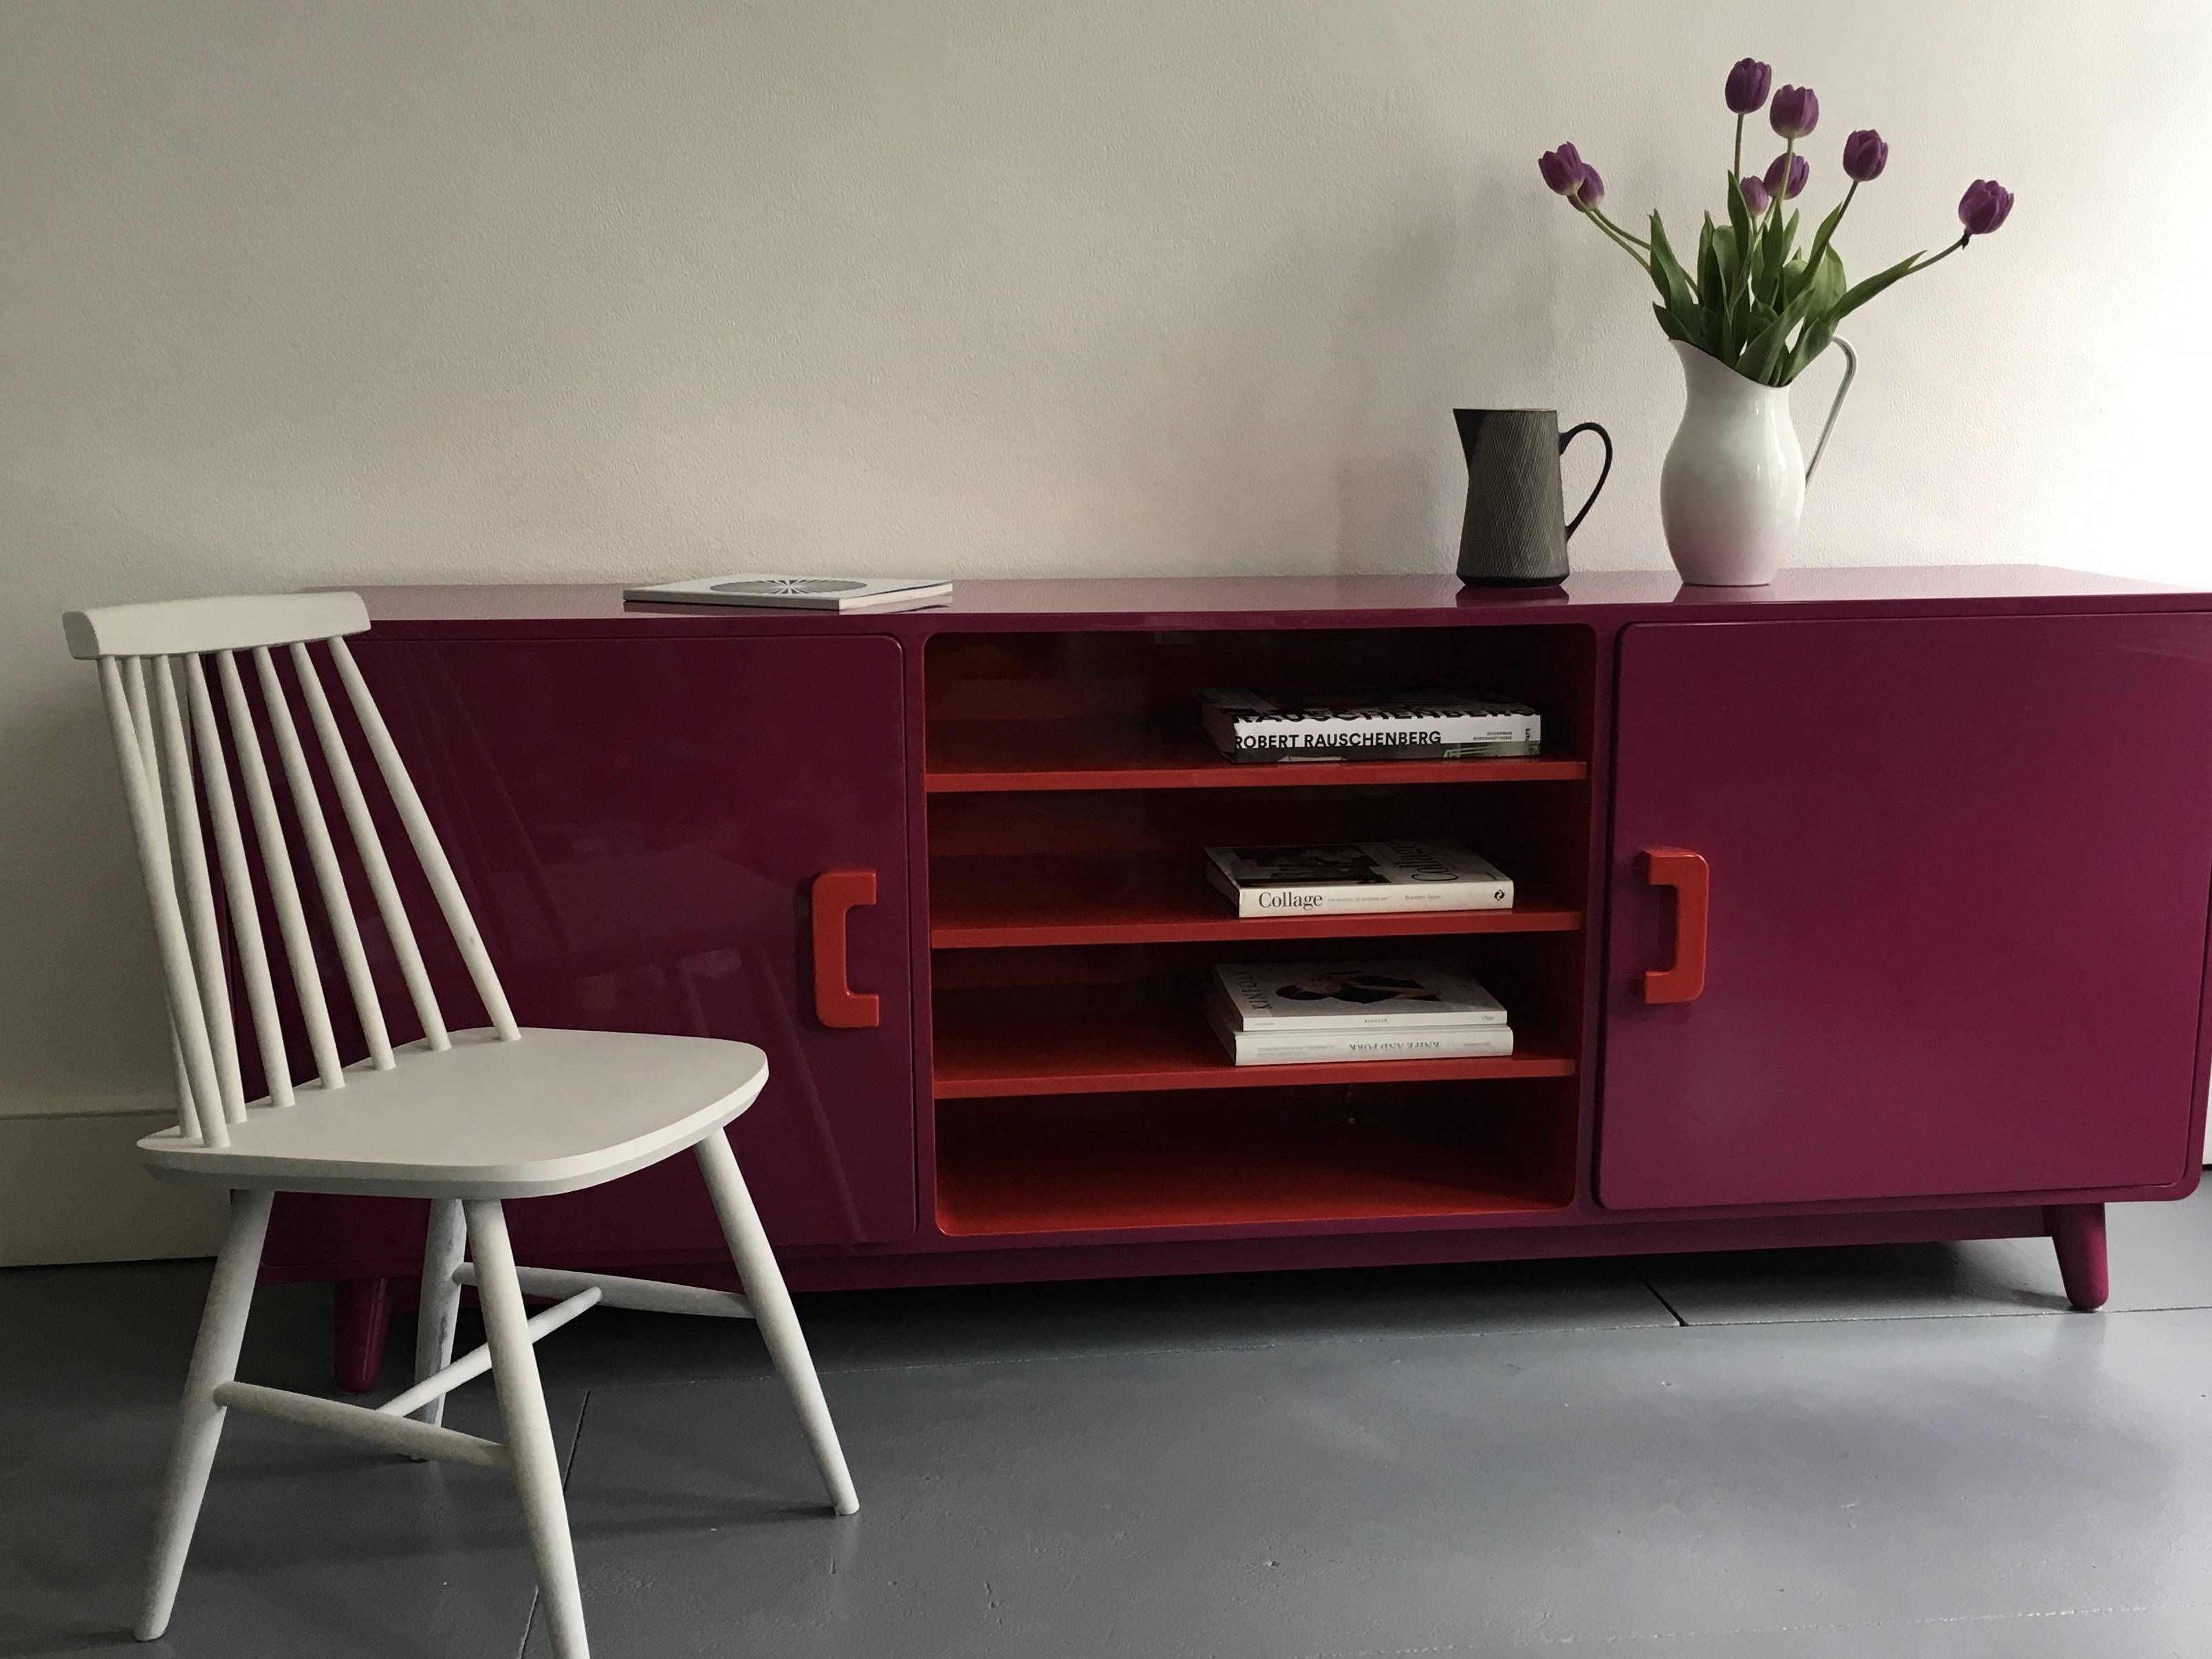 60's Inspired High Gloss Lacquered Sideboard In Hot Pink And Red intended for Red High Gloss Sideboards (Image 4 of 30)